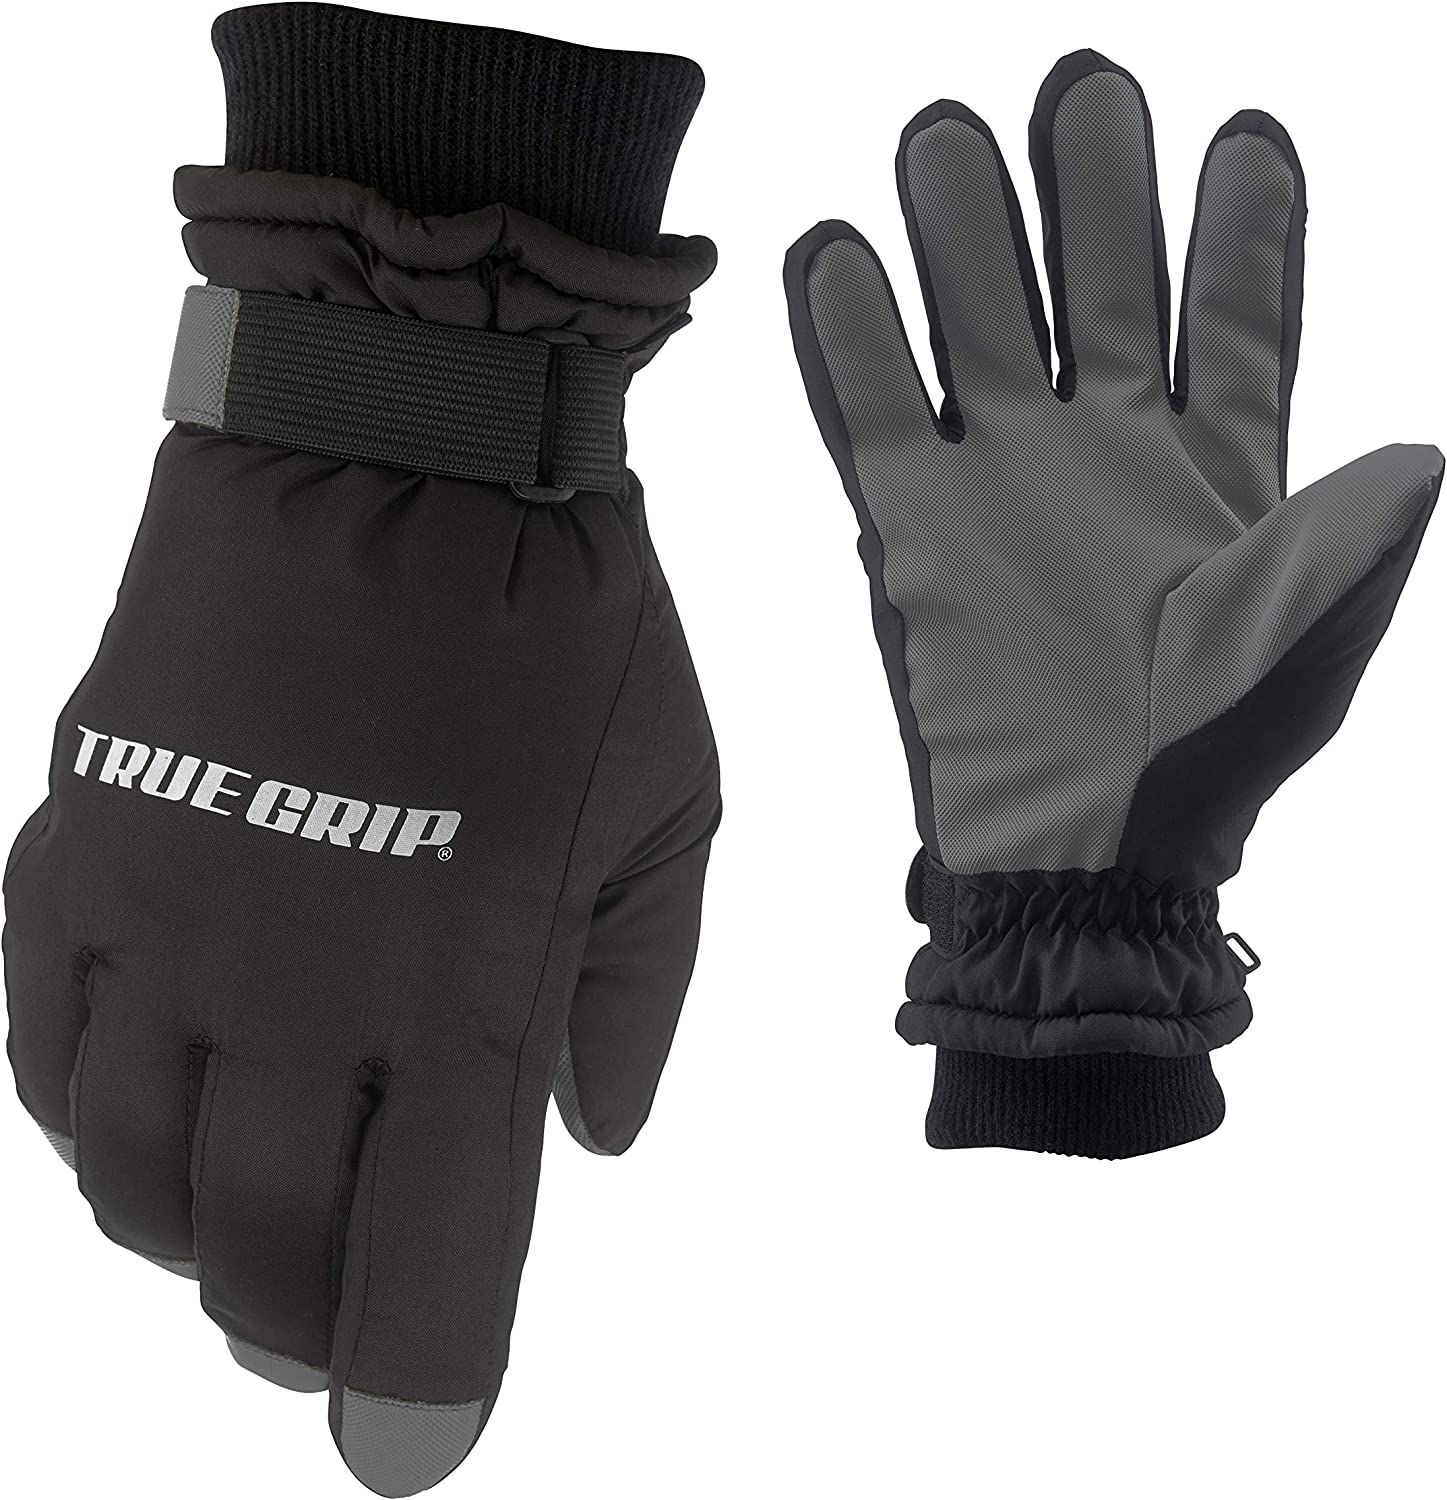 True Grip All Weather Winter Glove with Water Shedding Shell   40g Thinsulate Insulation